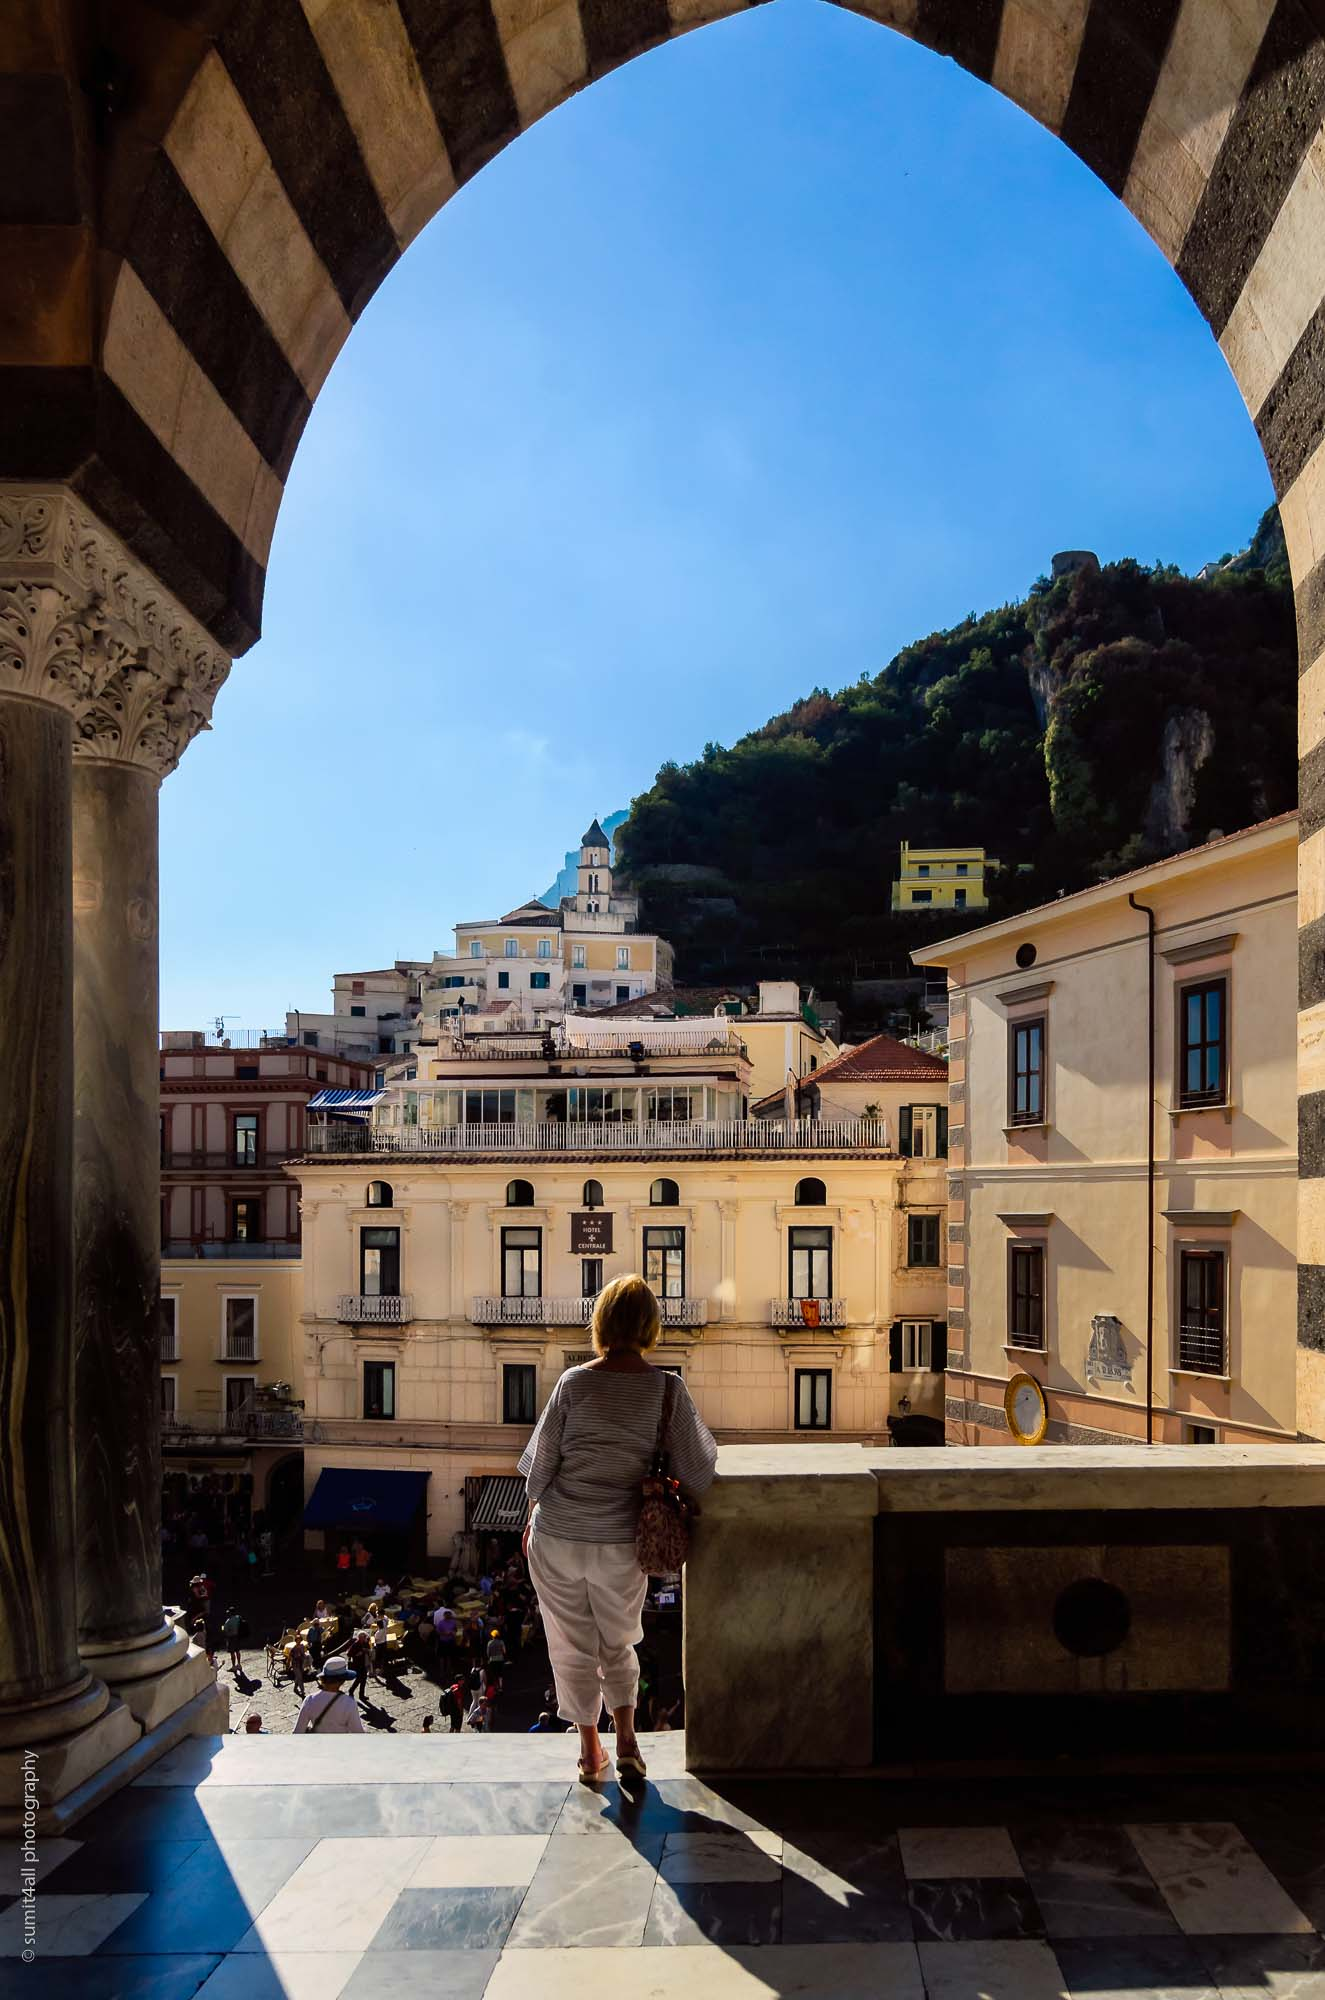 A Lady pondering over something in Amalfi, Italy